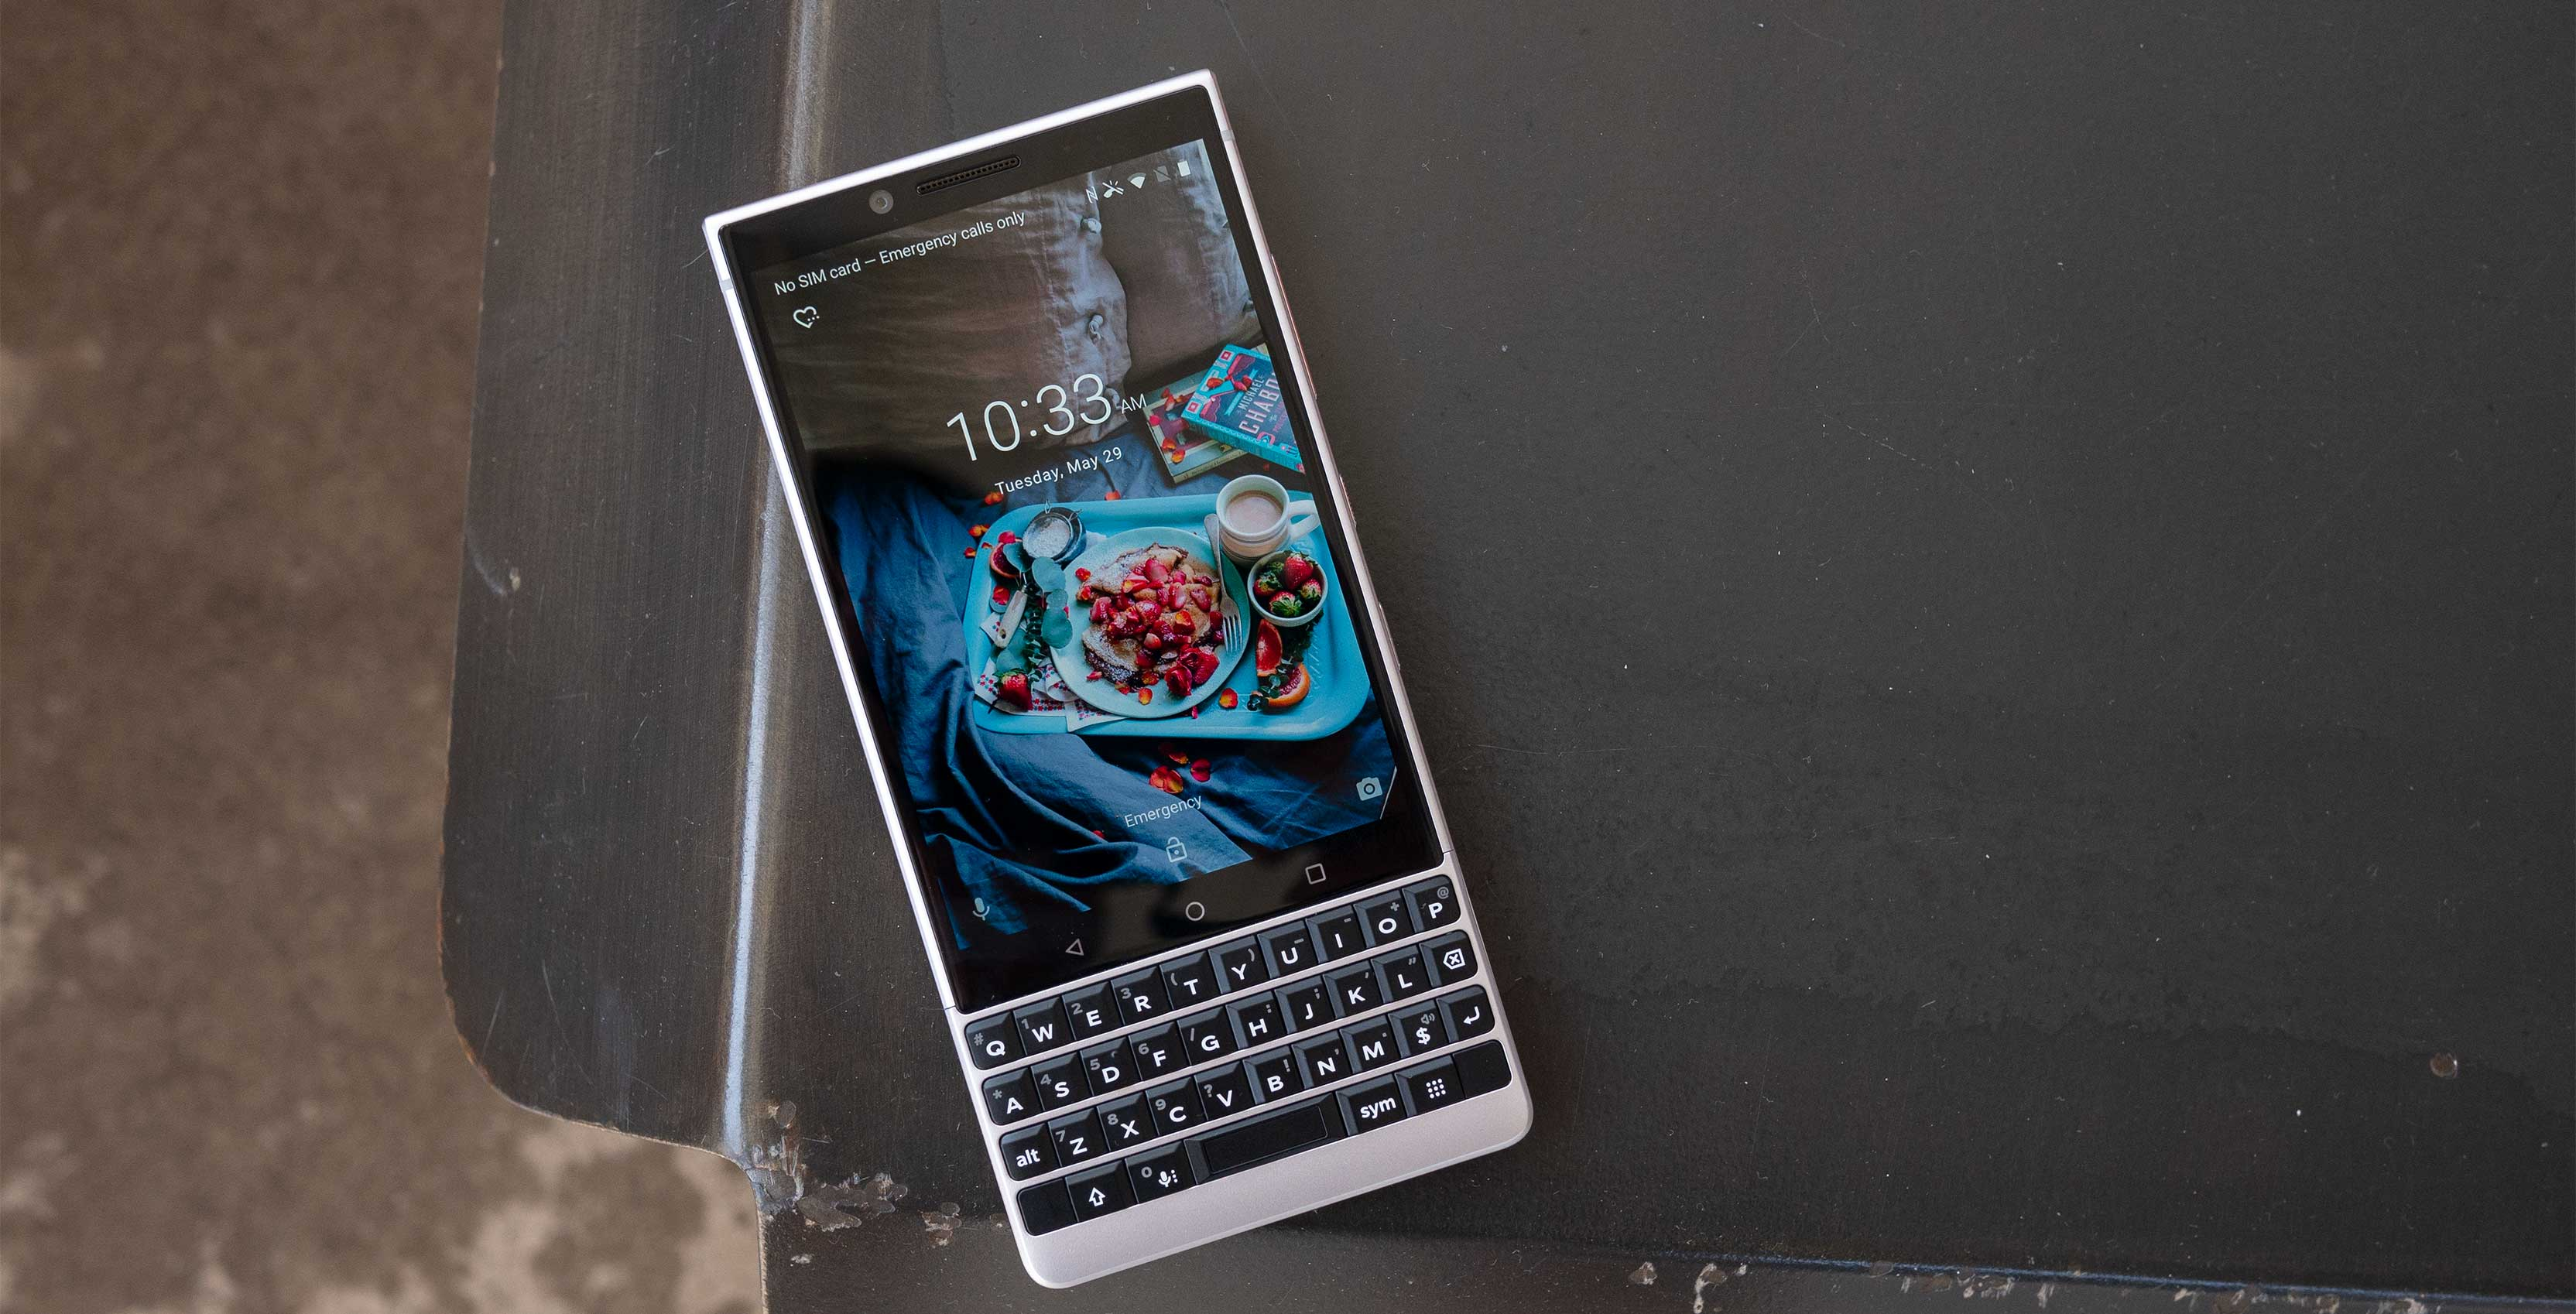 How to watch online unveiling of new BlackBerry phone